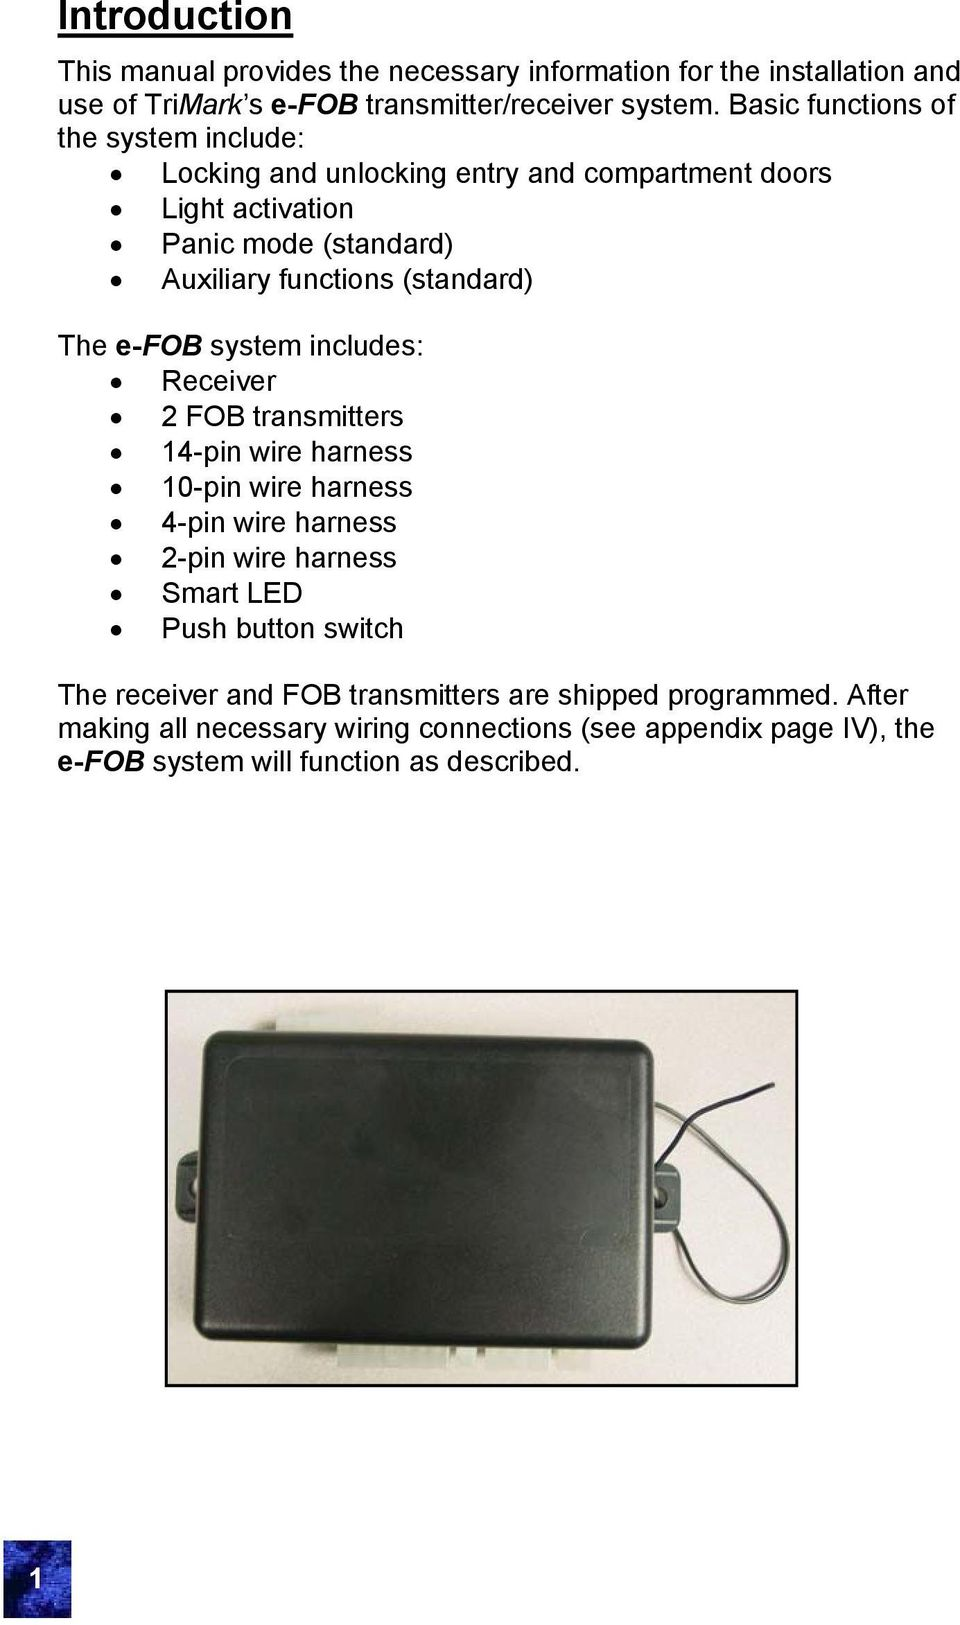 (standard) The e-fob system includes: Receiver 2 FOB transmitters 14-pin wire harness 10-pin wire harness 4-pin wire harness 2-pin wire harness Smart LED